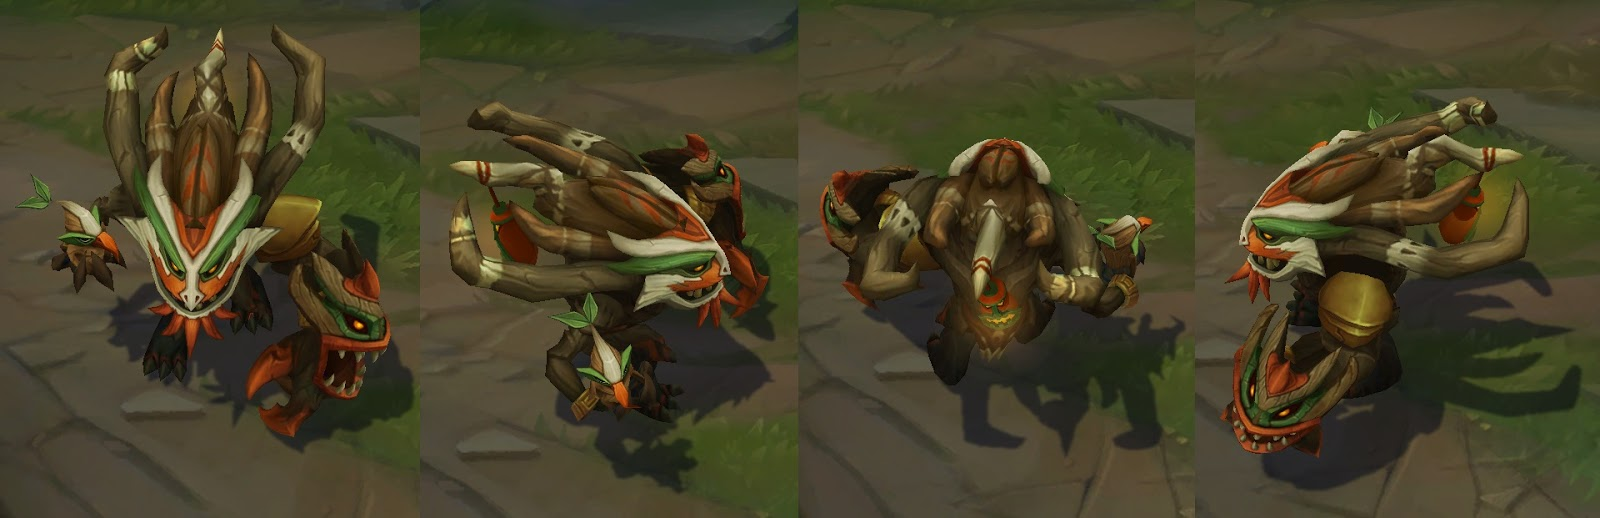 Surrender at 20: Champion and Skin Sale 9/8 - 9/11